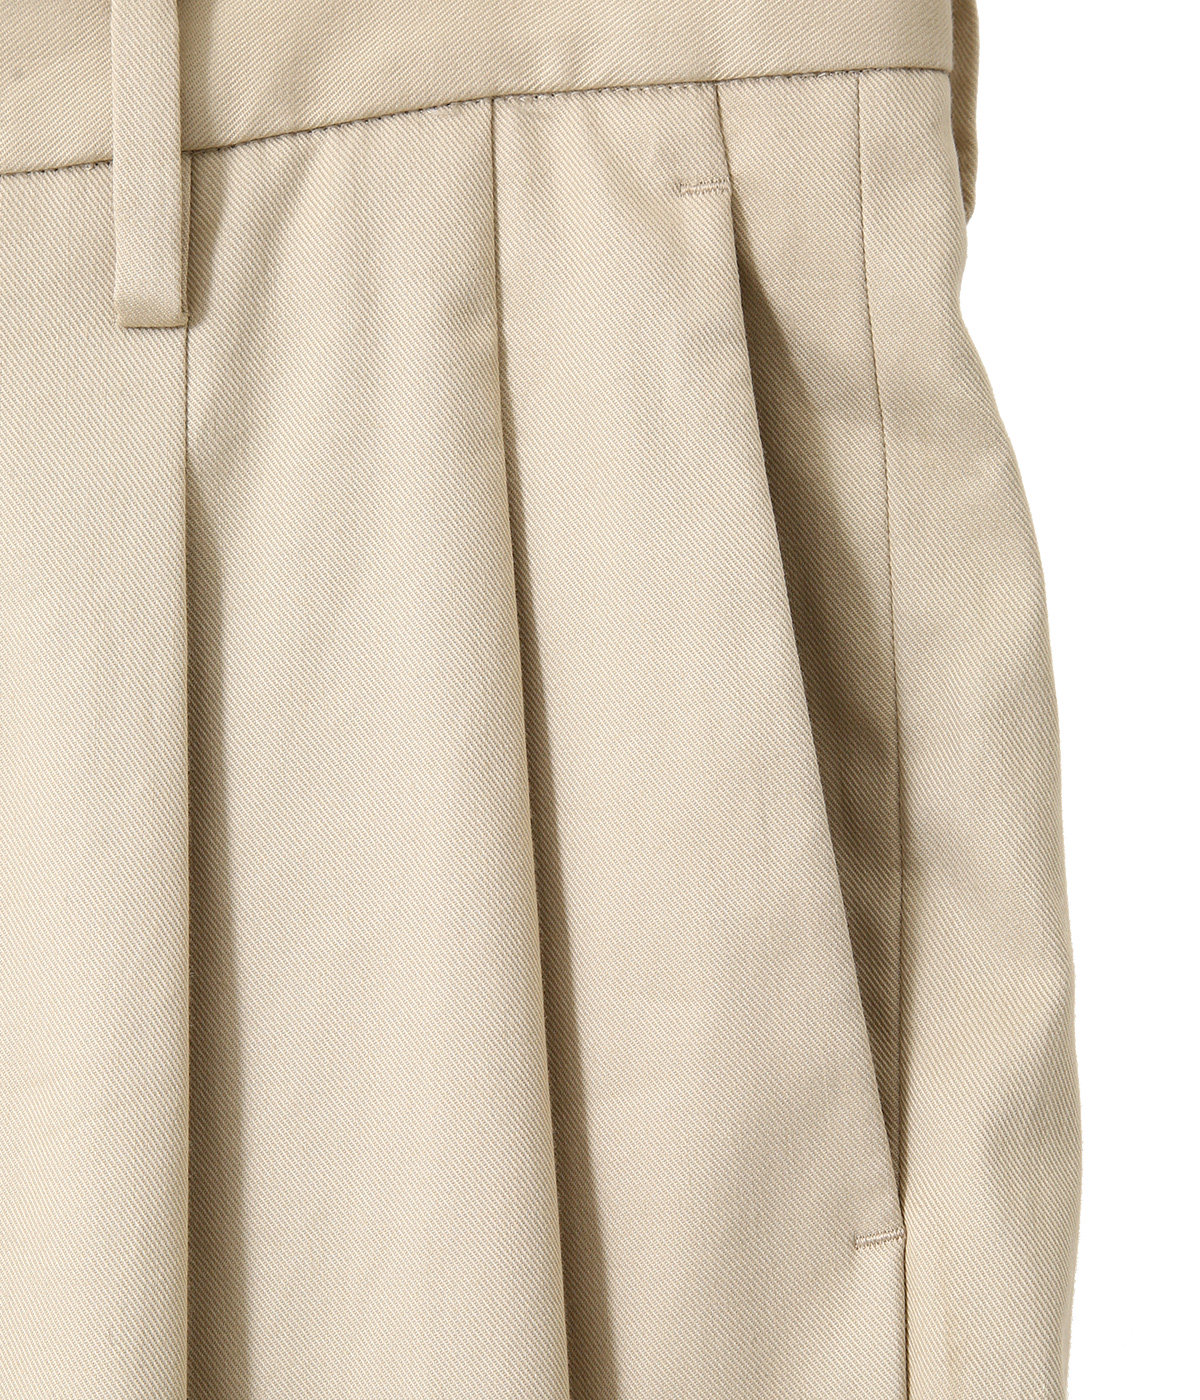 2 TUCK WIDE PANTS -ARKnets exclusive-